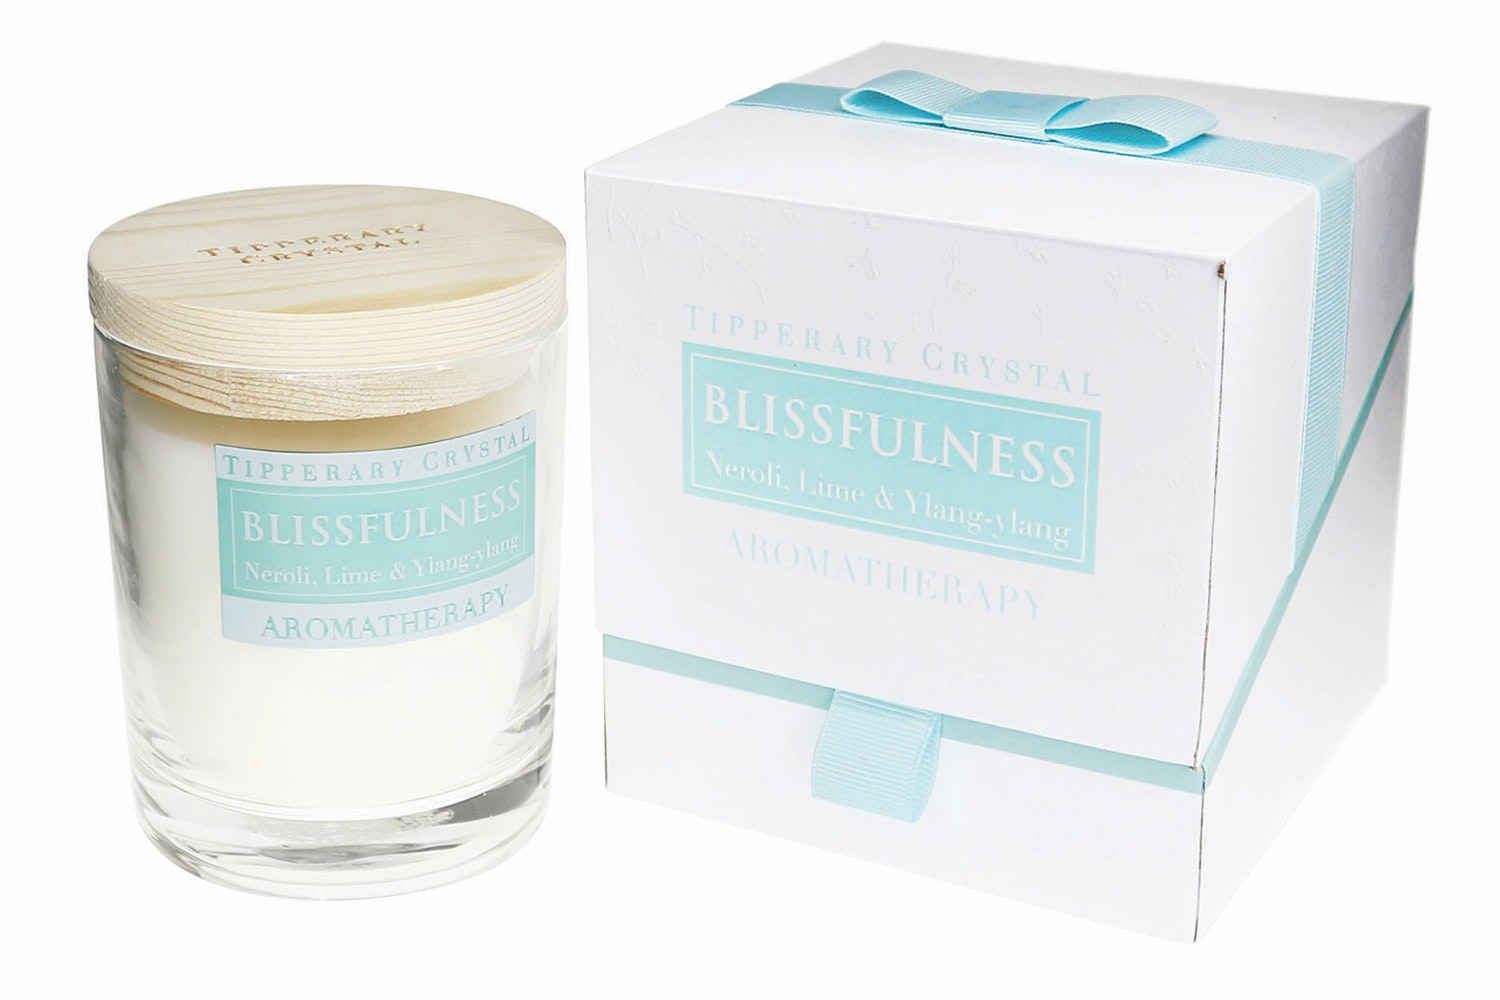 Tipperary Crystal|Blissfulness Neroli Lime And Ylang Ylang Candle